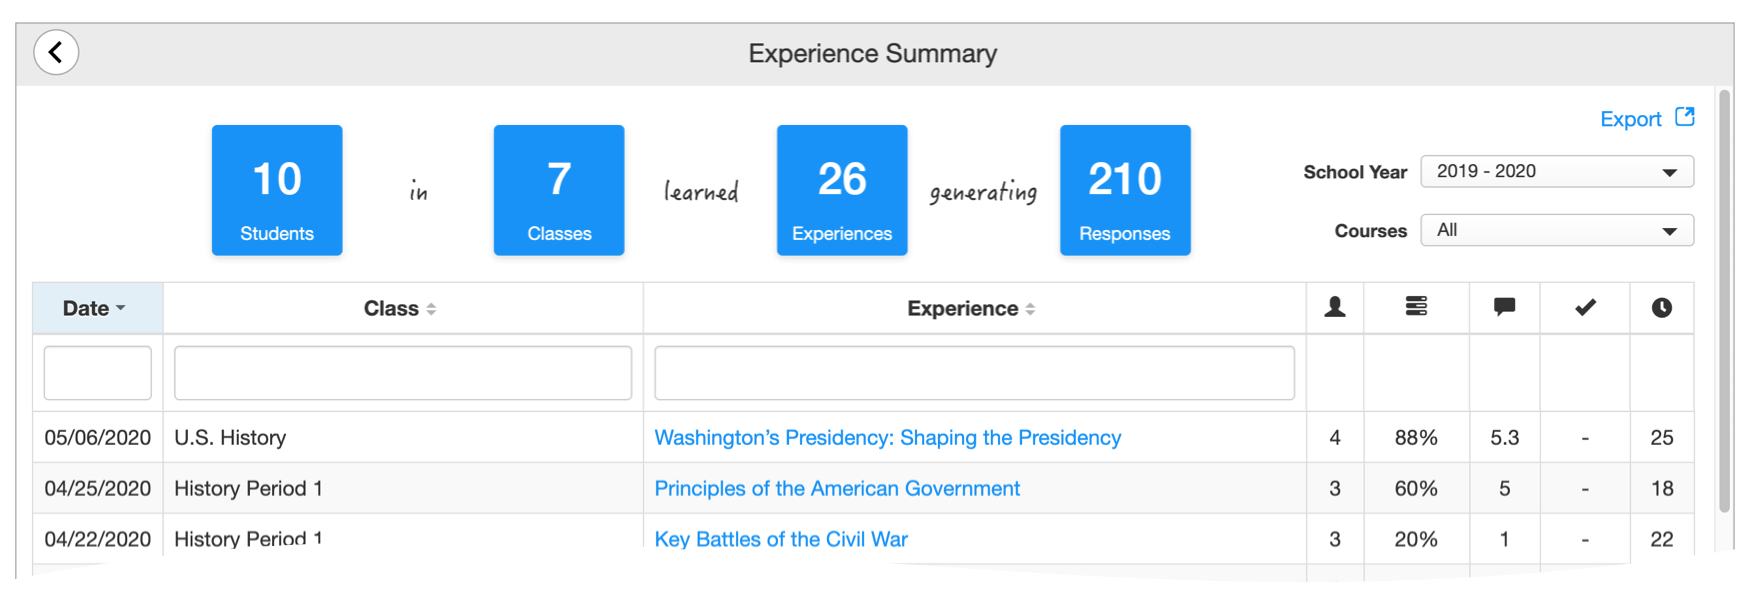 Experience Summary Report